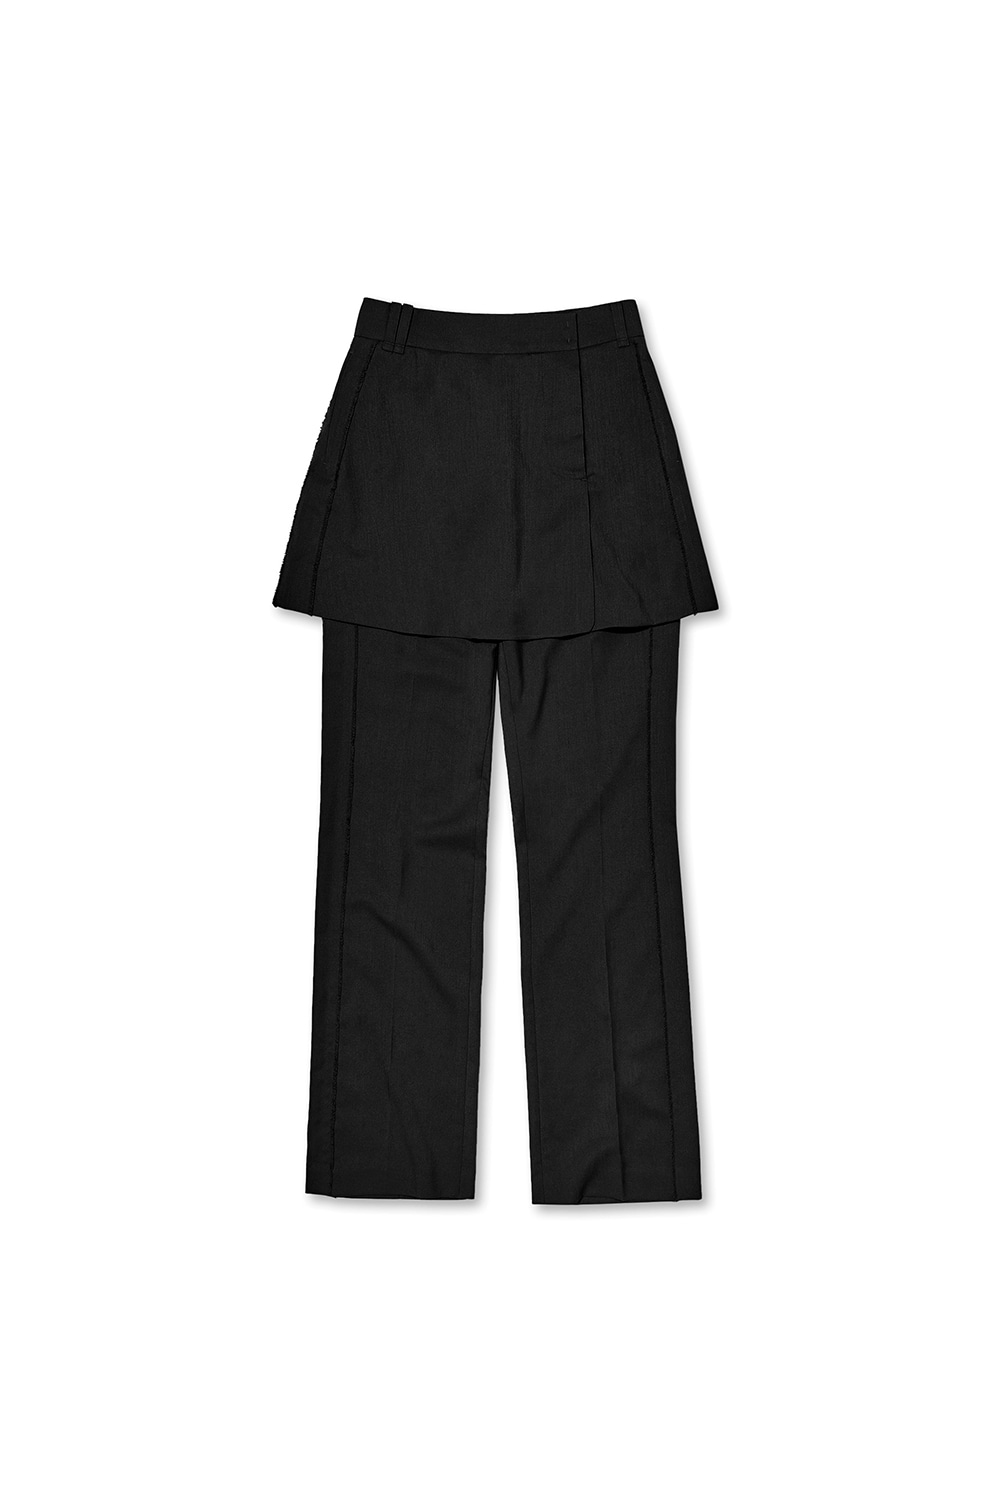 CUT OFF LAYERED PANTS KS [BLACK]